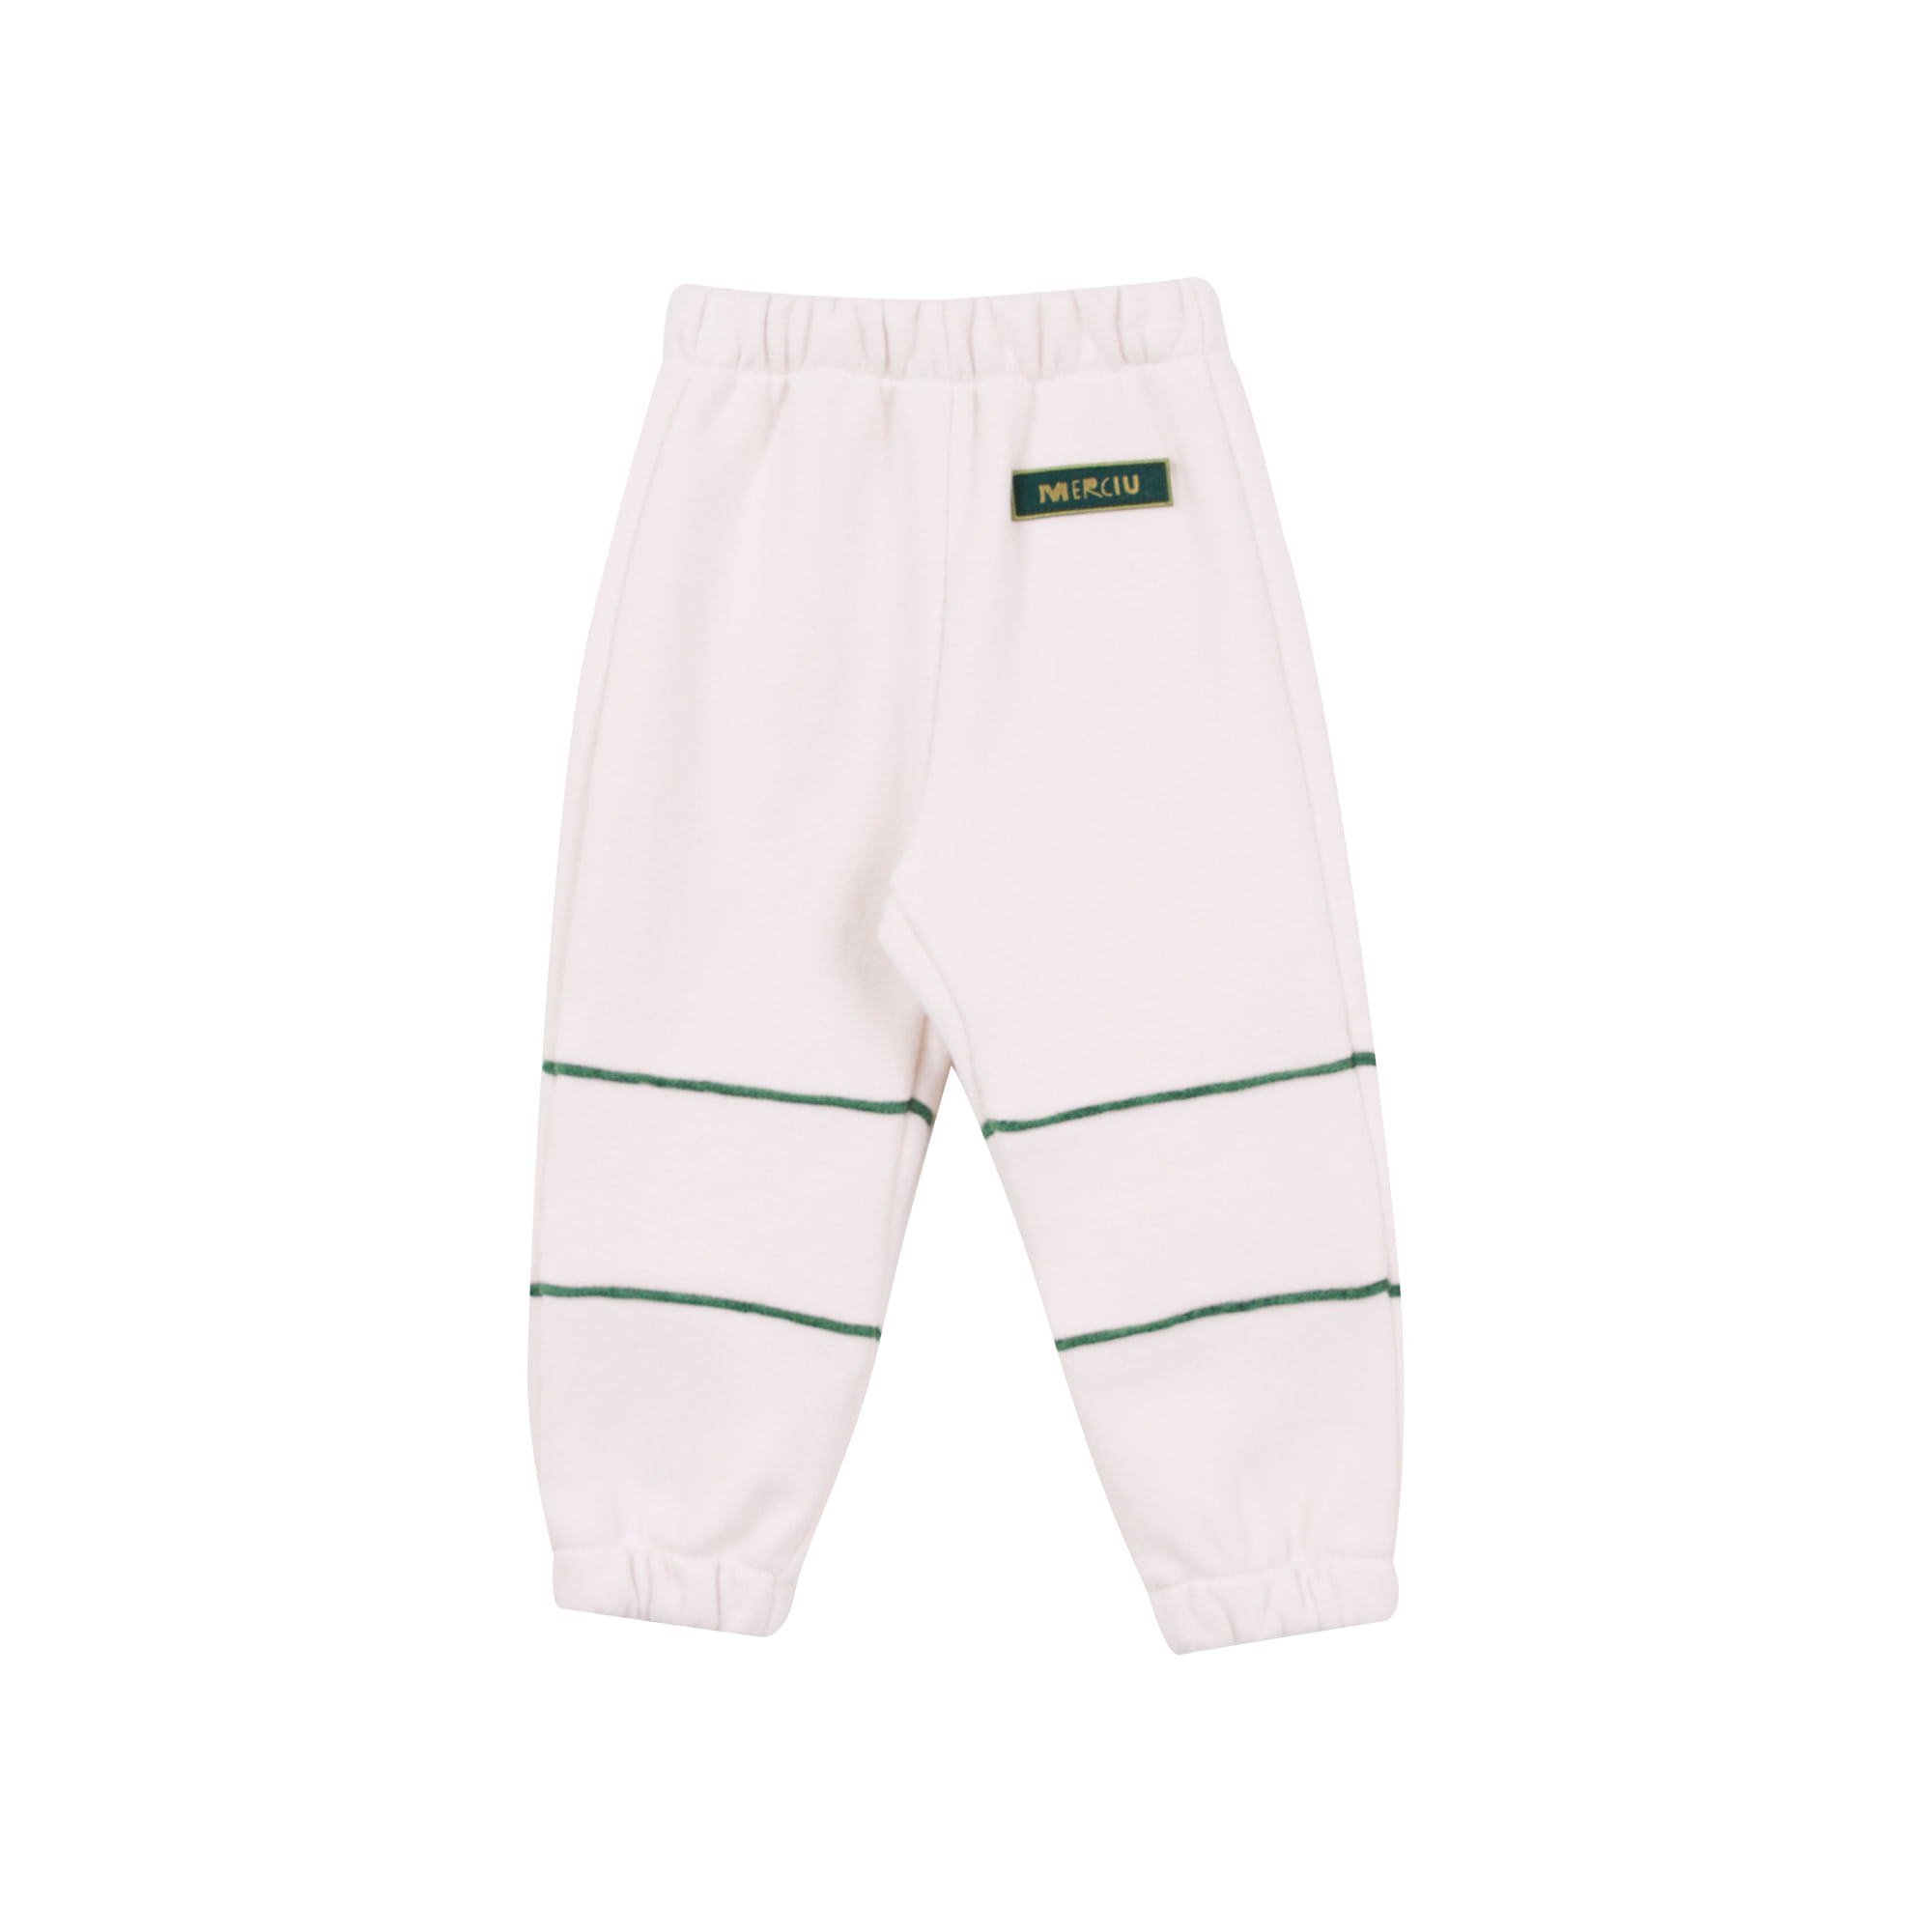 Piping jogger pants - ivory (2차입고, 당일발송)